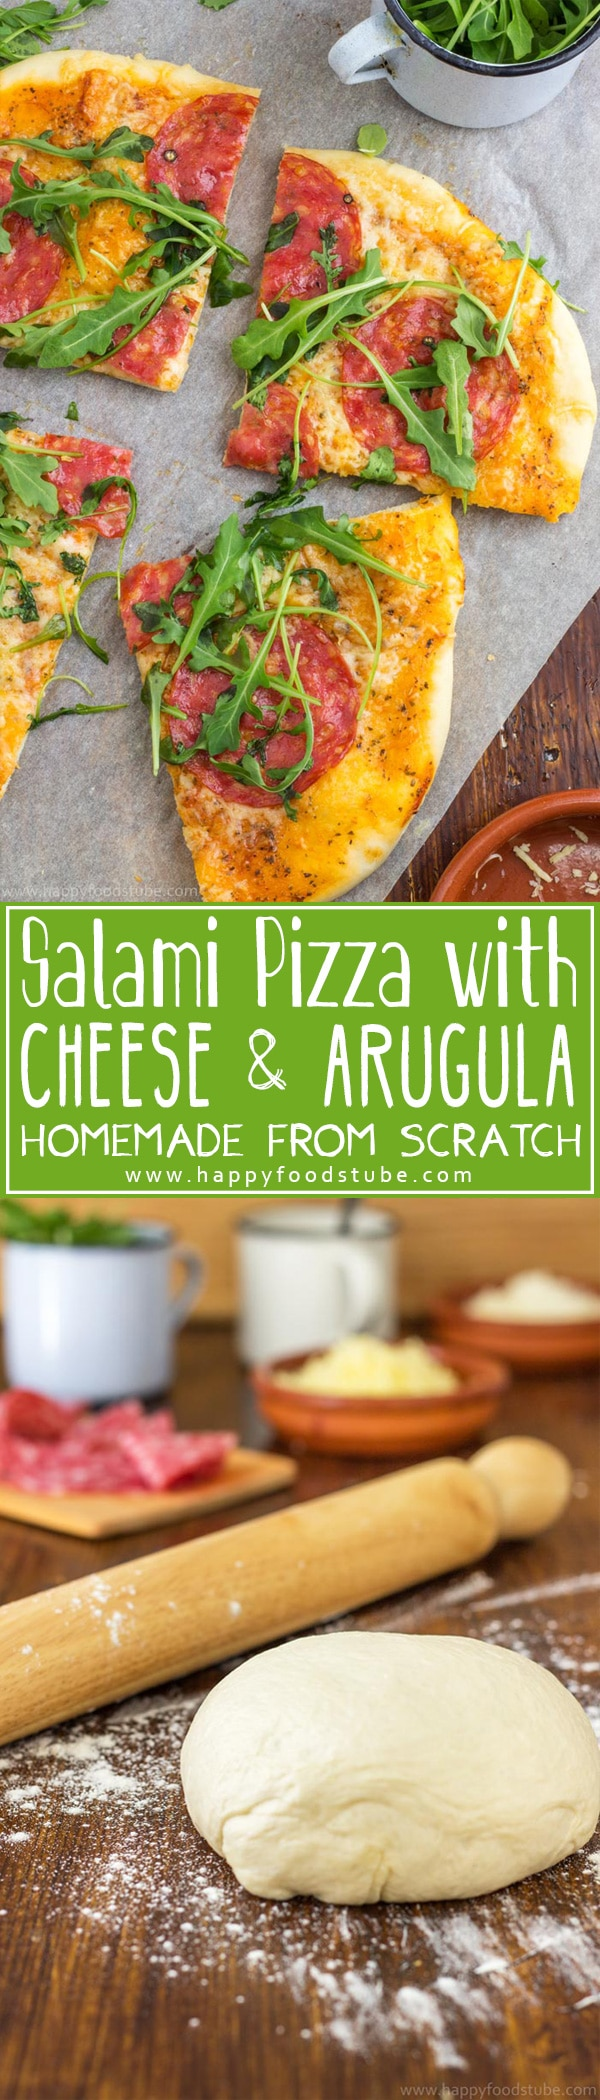 Pizza time! Salami pizza with cheese and arugula is waiting for you! Homemade pizza dough, pizza sauce from scratch and simple yet mouth-watering toppings! Only 5 ingredients! | happyfoodstube.com